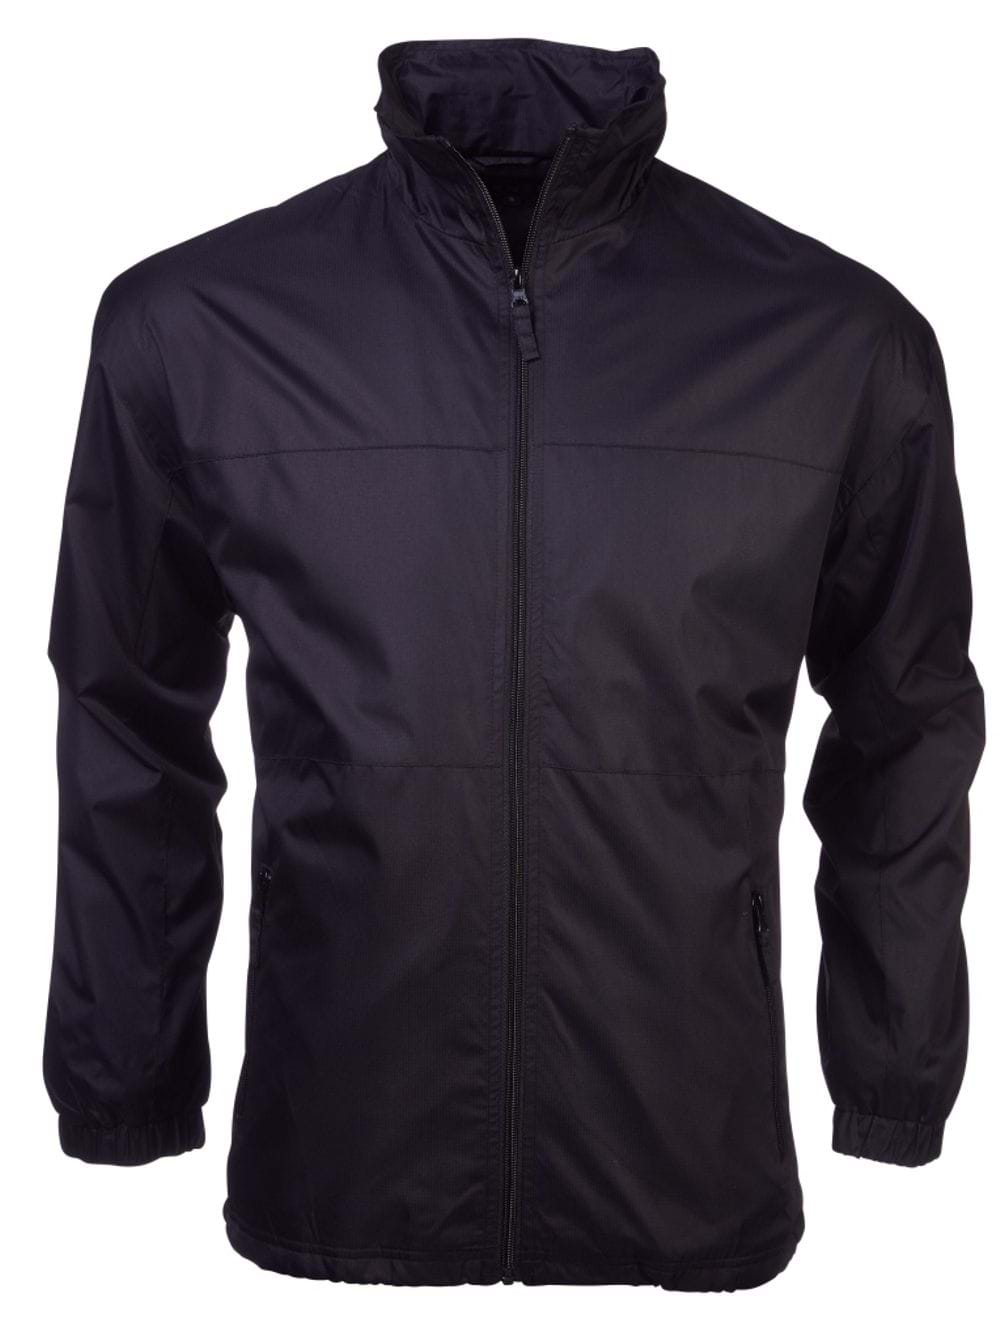 Mens Hemisphere Jacket - Black